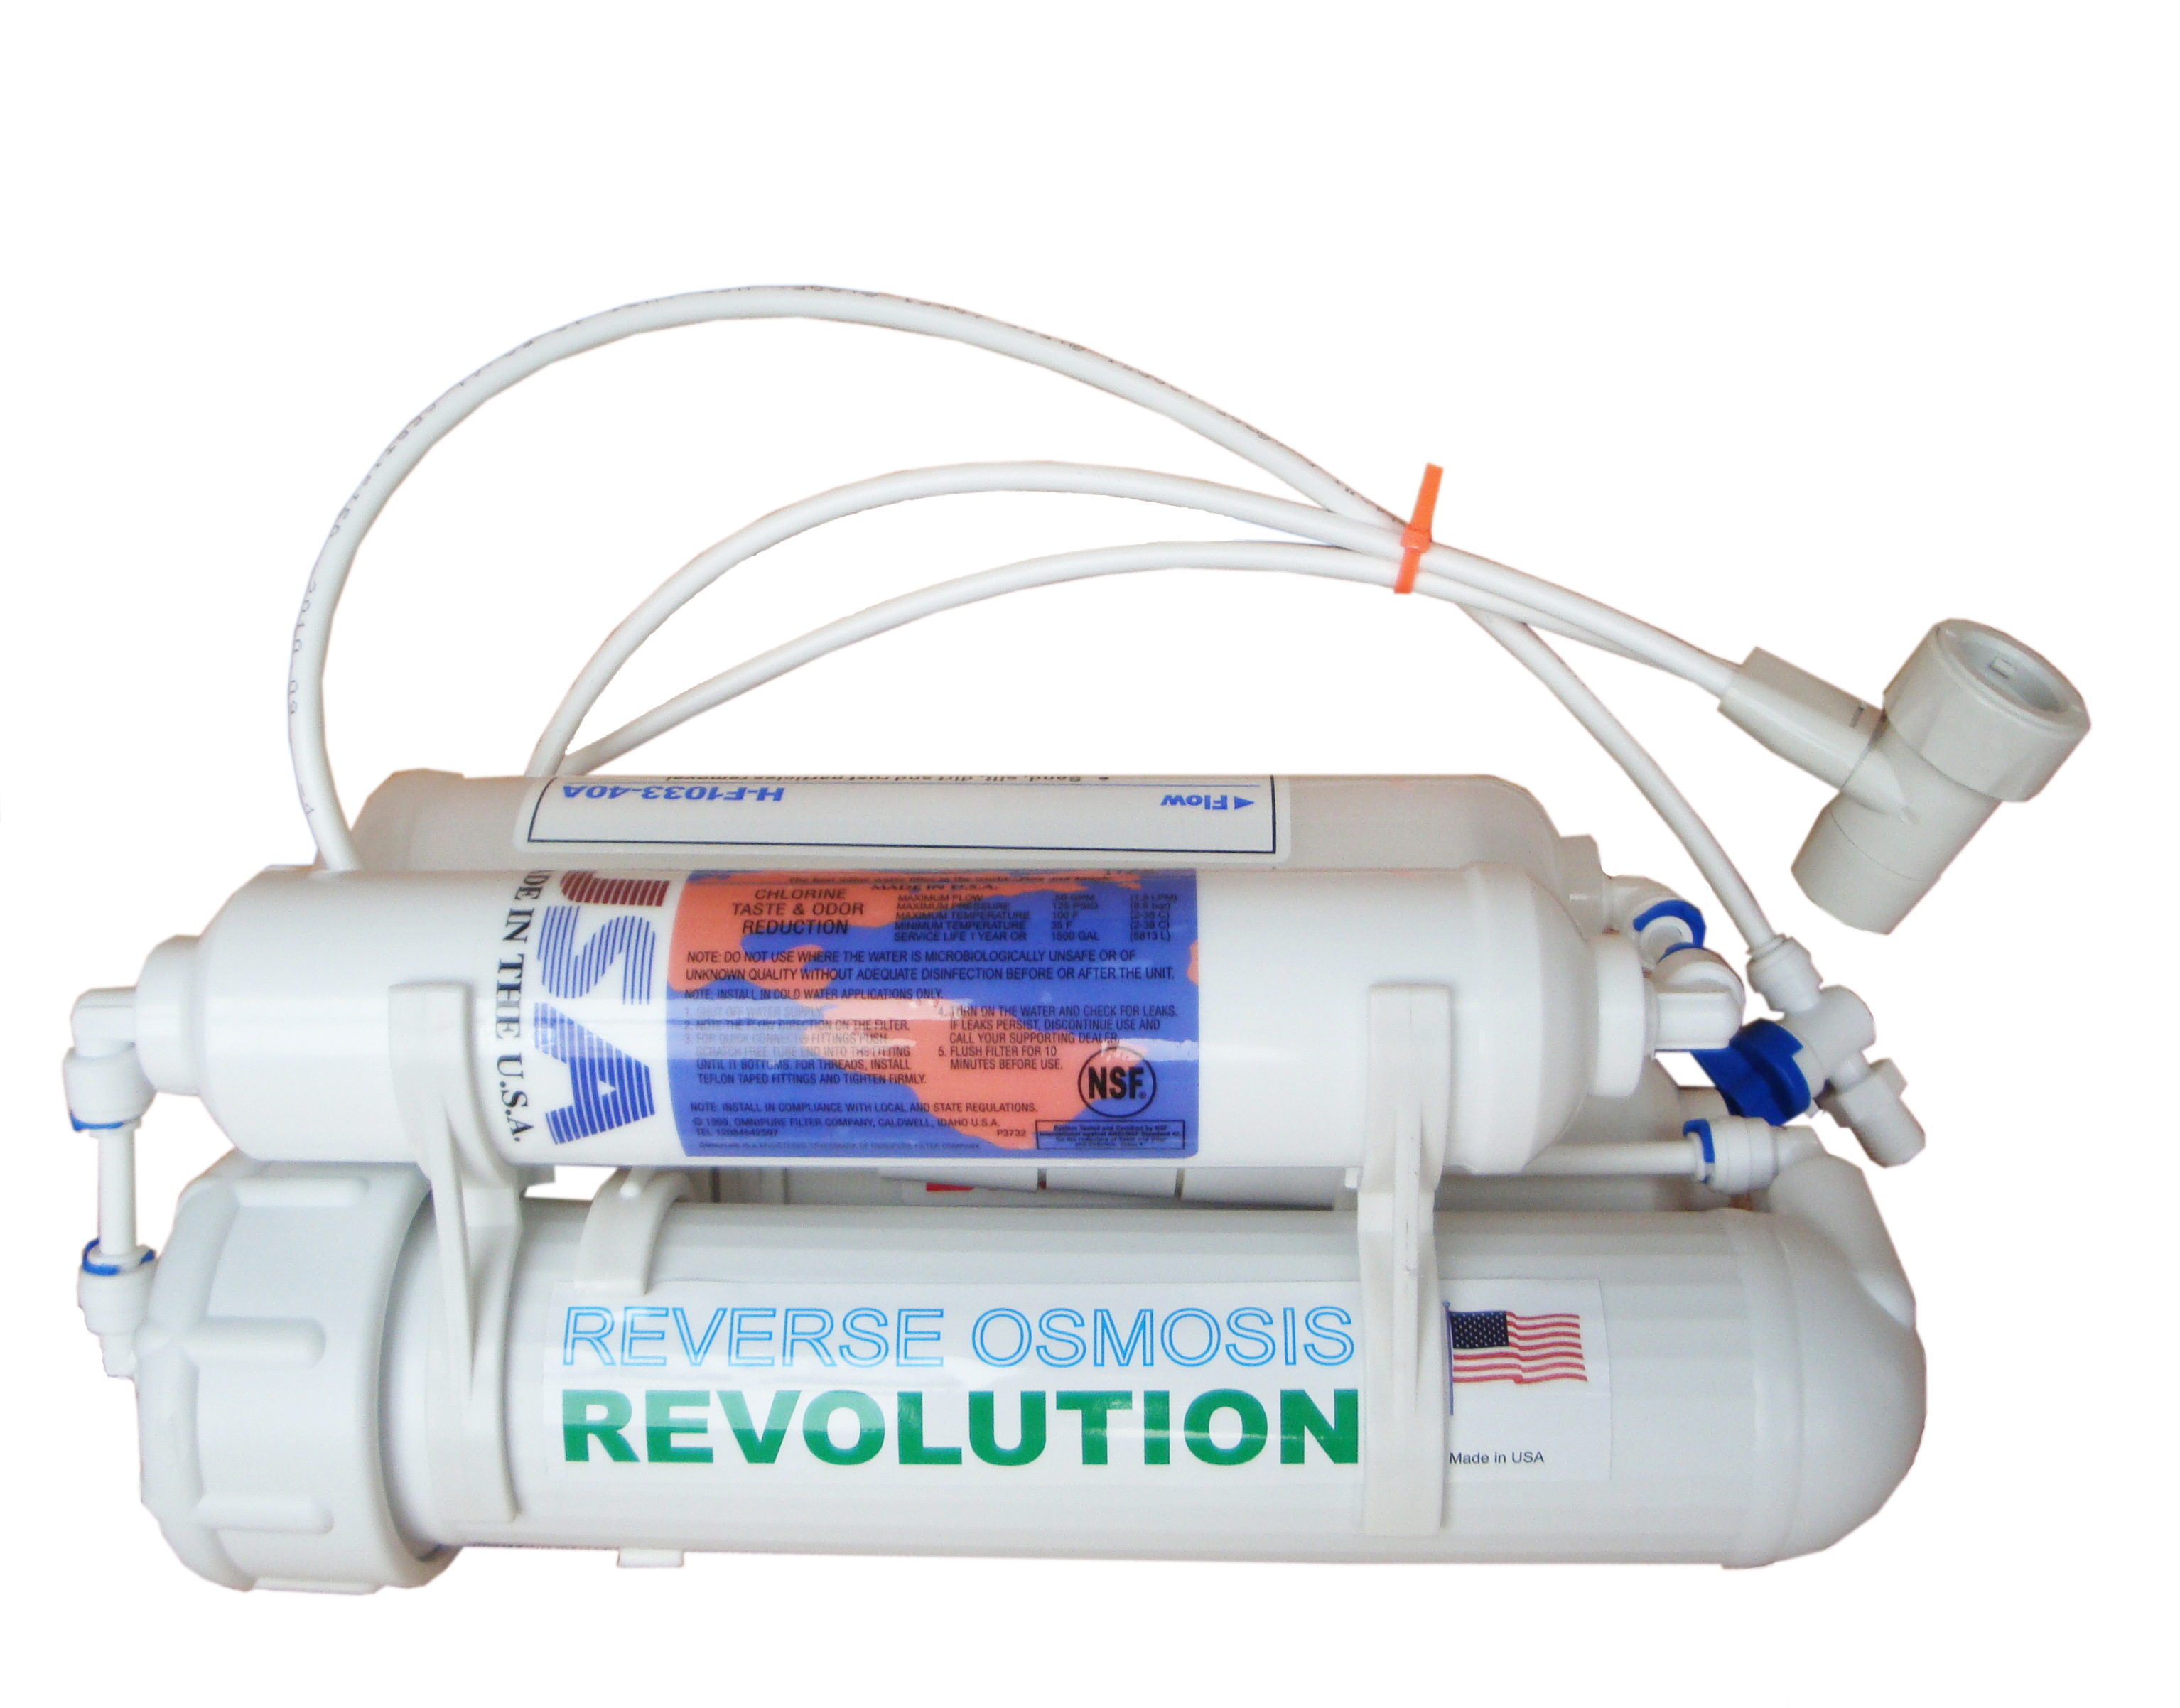 Aquarium 4-stage Reverse Osmosis Revolution Water Purification System with DI 0PPM  bed filtration, 75/100/125/150 GPD